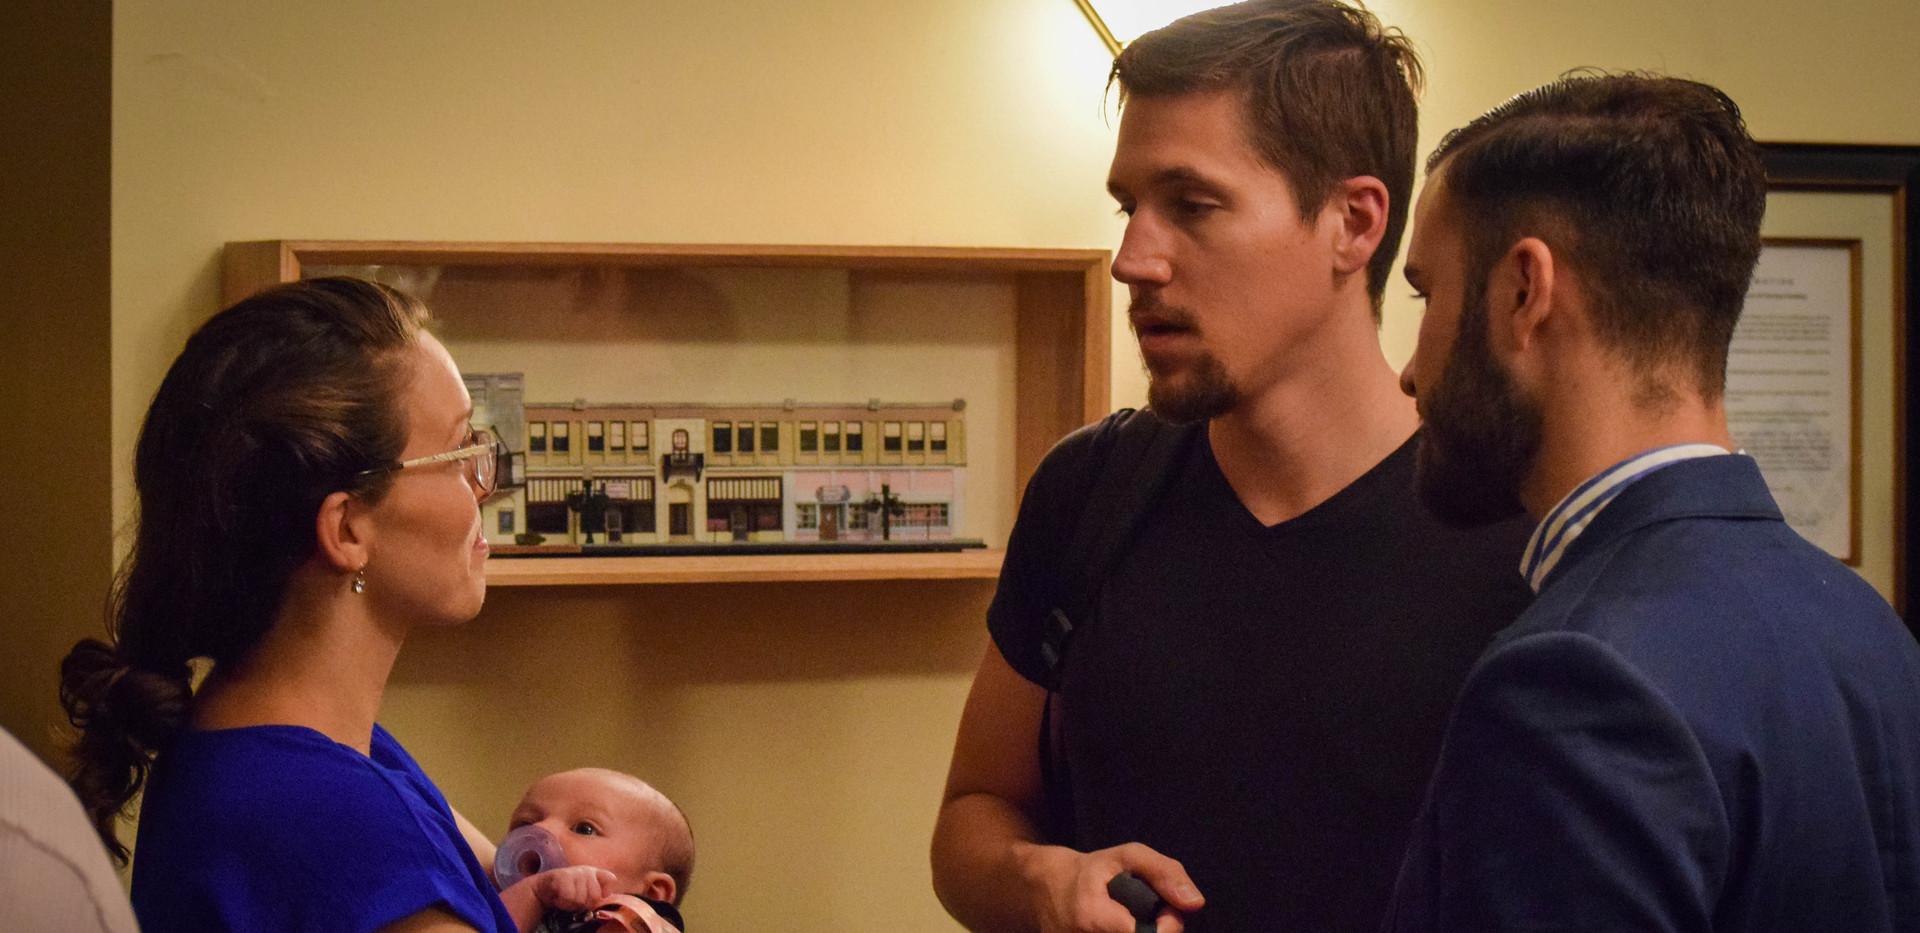 Jarrod Anderson (Changing Jane) tends to family matters before the start of the event.